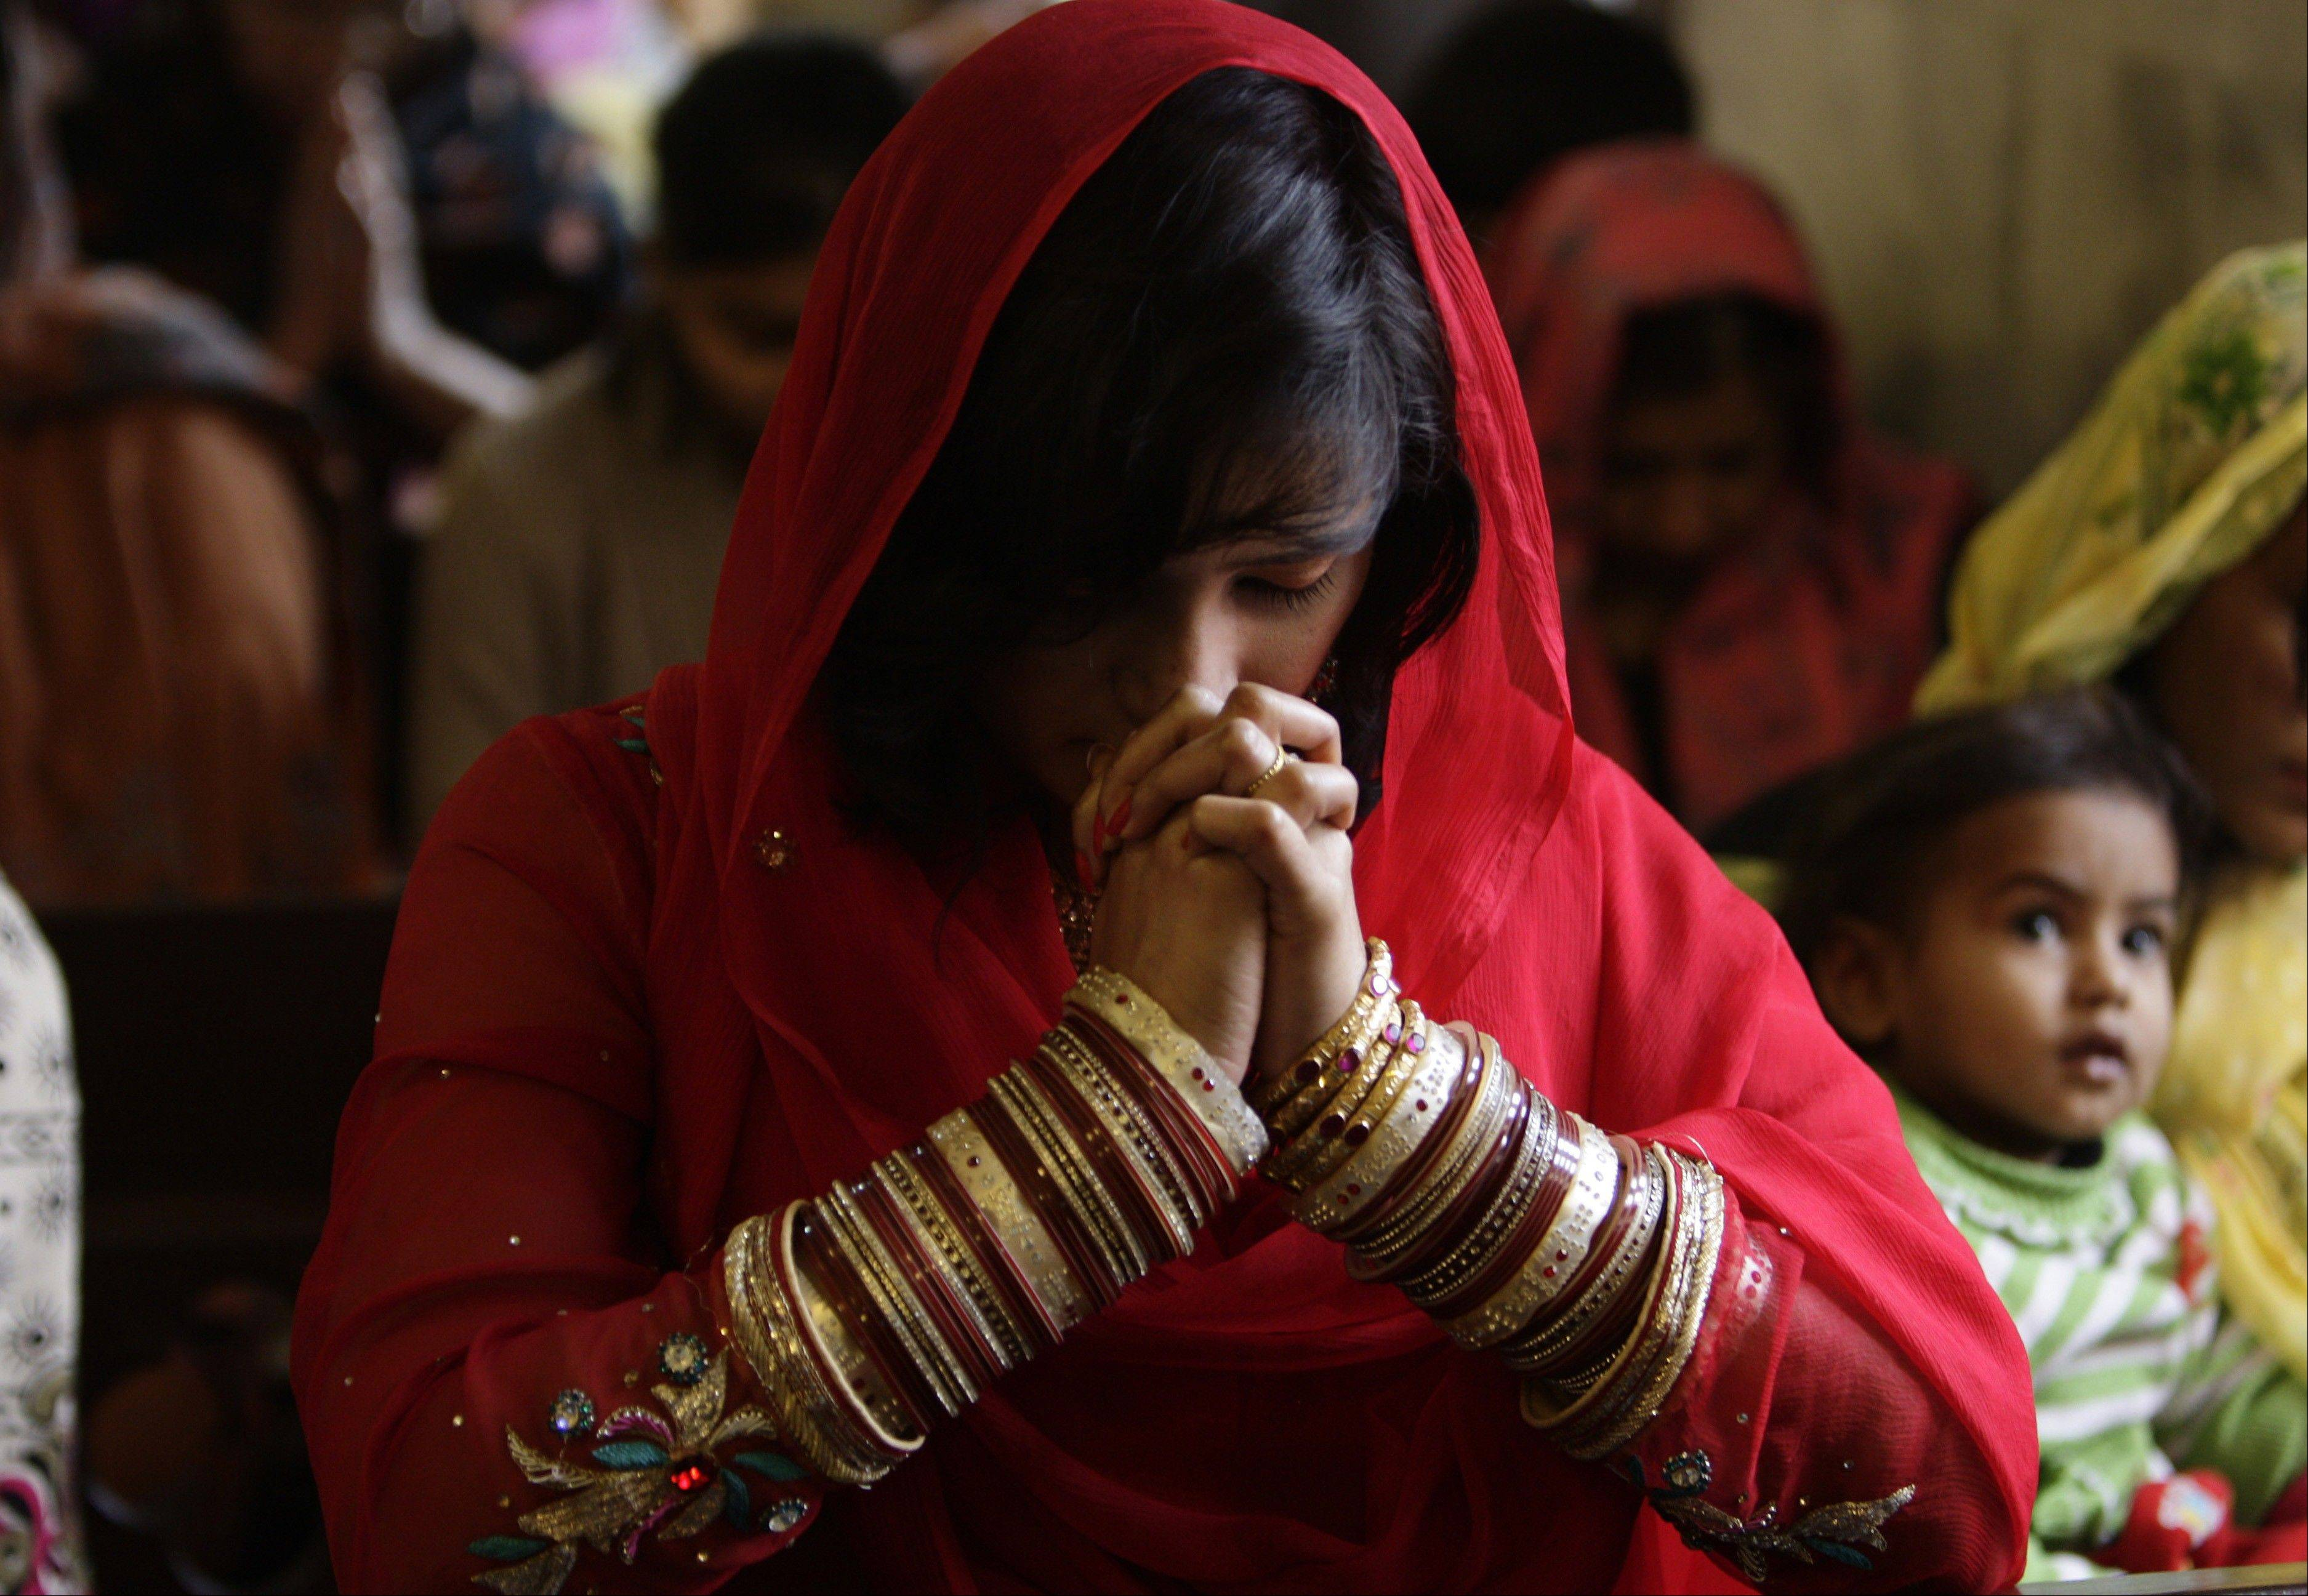 Pakistani Christians attend a prayer service on the first day of the New Year at a local church in Lahore, Pakistan, Wednesday, Jan. 1, 2014.